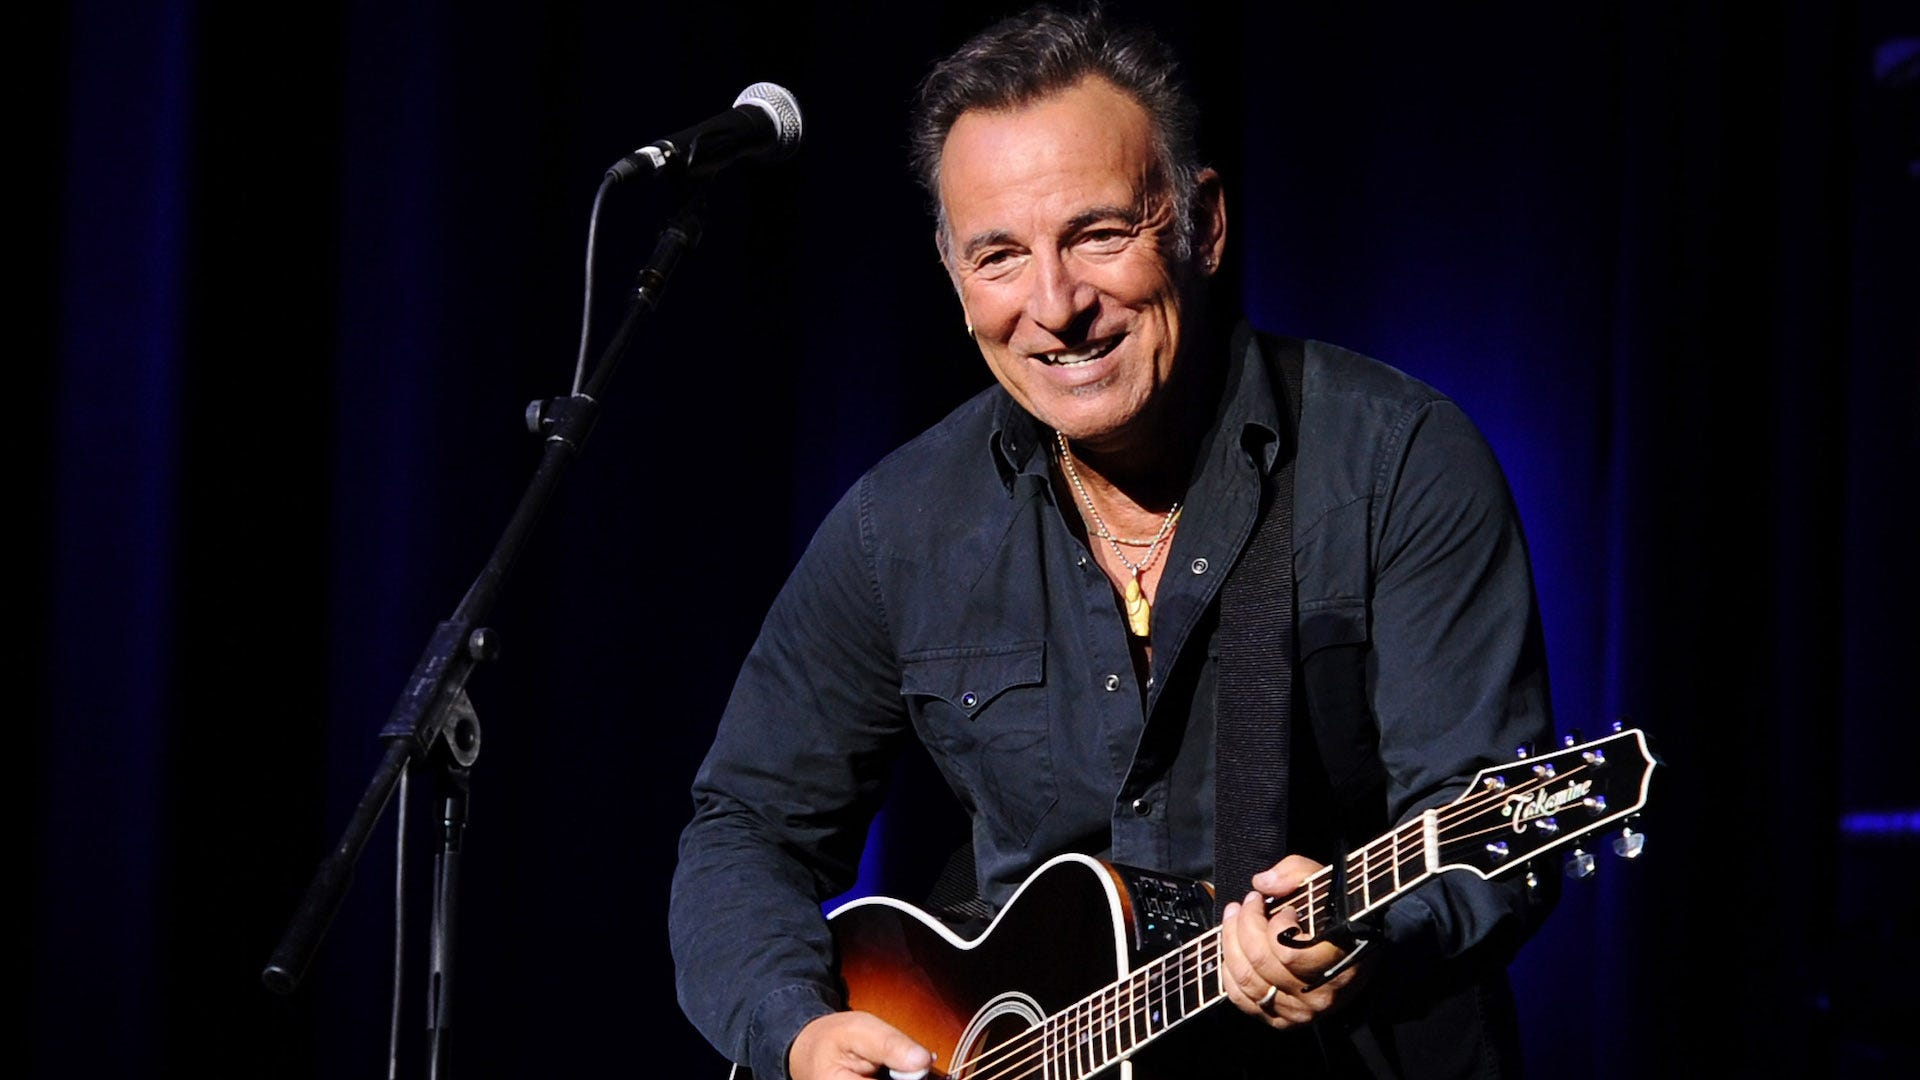 We finally know what Mary's dress does in Bruce Springsteen's 'Thunder Road'